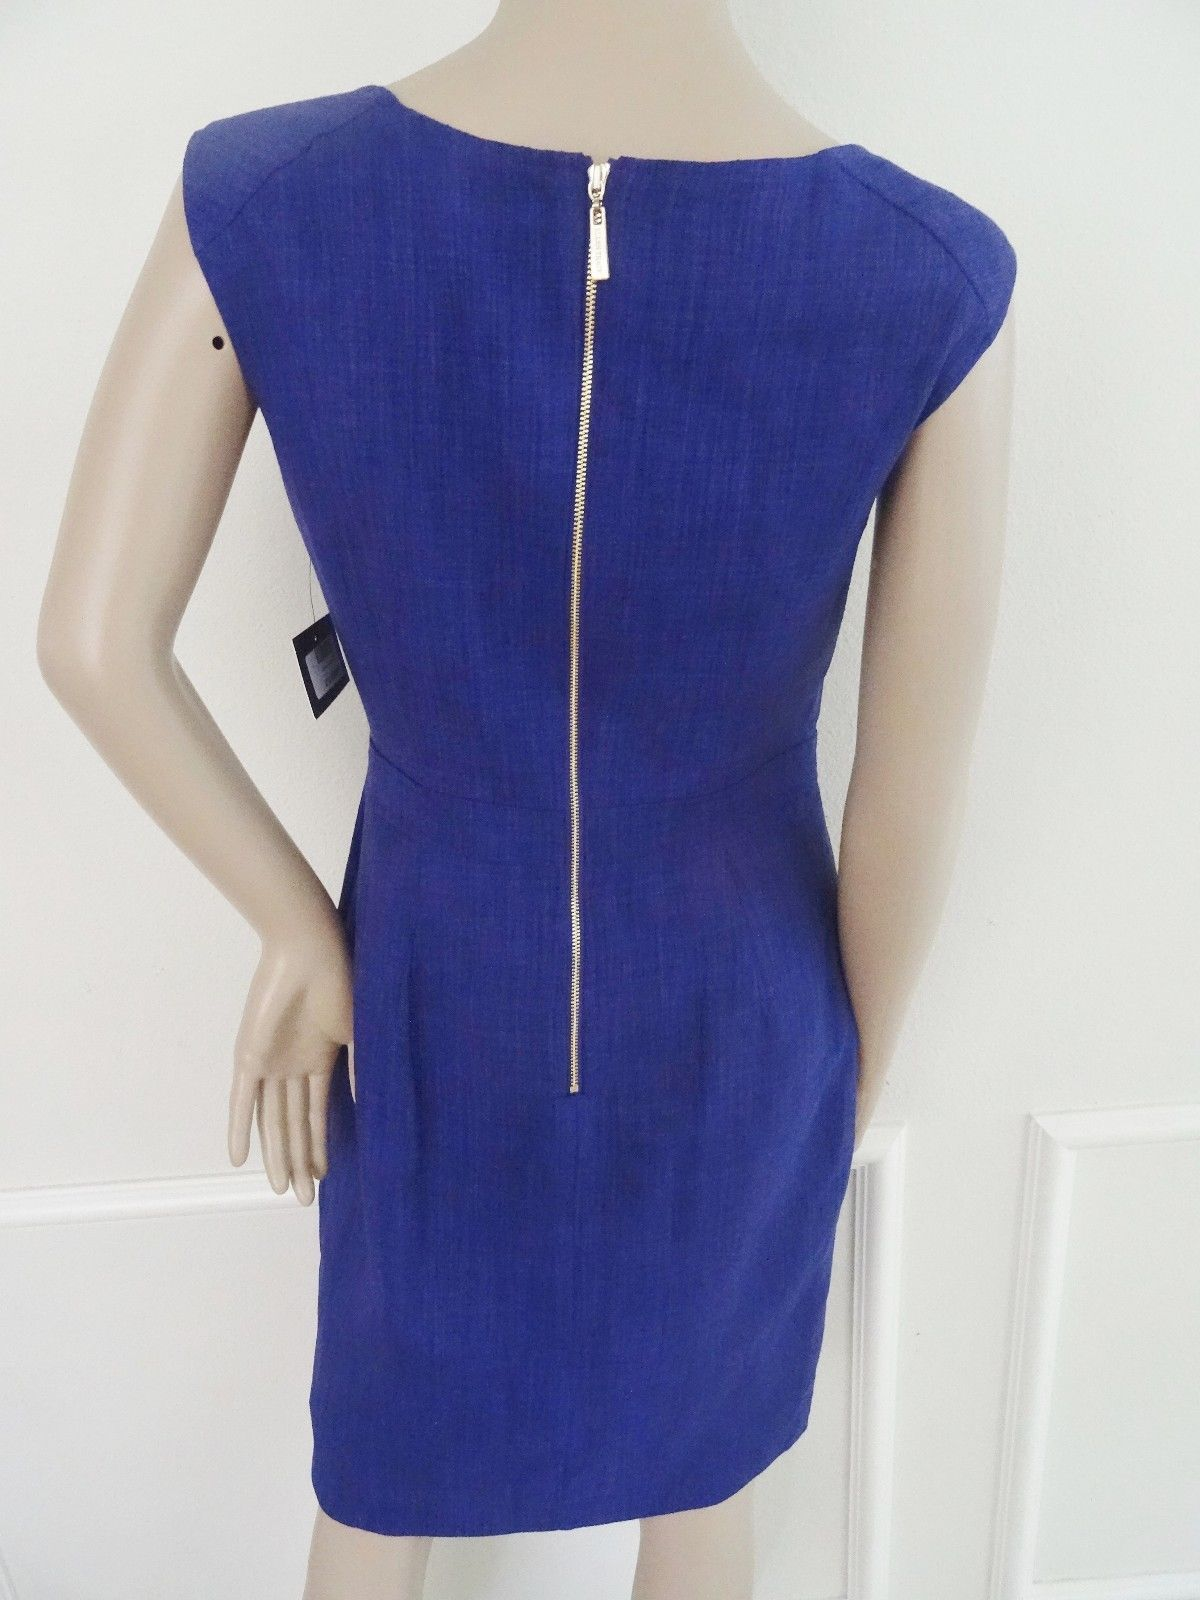 Nwt Ellen Tracy Faux Wrap Sheath Sleeveless Cocktail Party Dress Sz 4 Purple